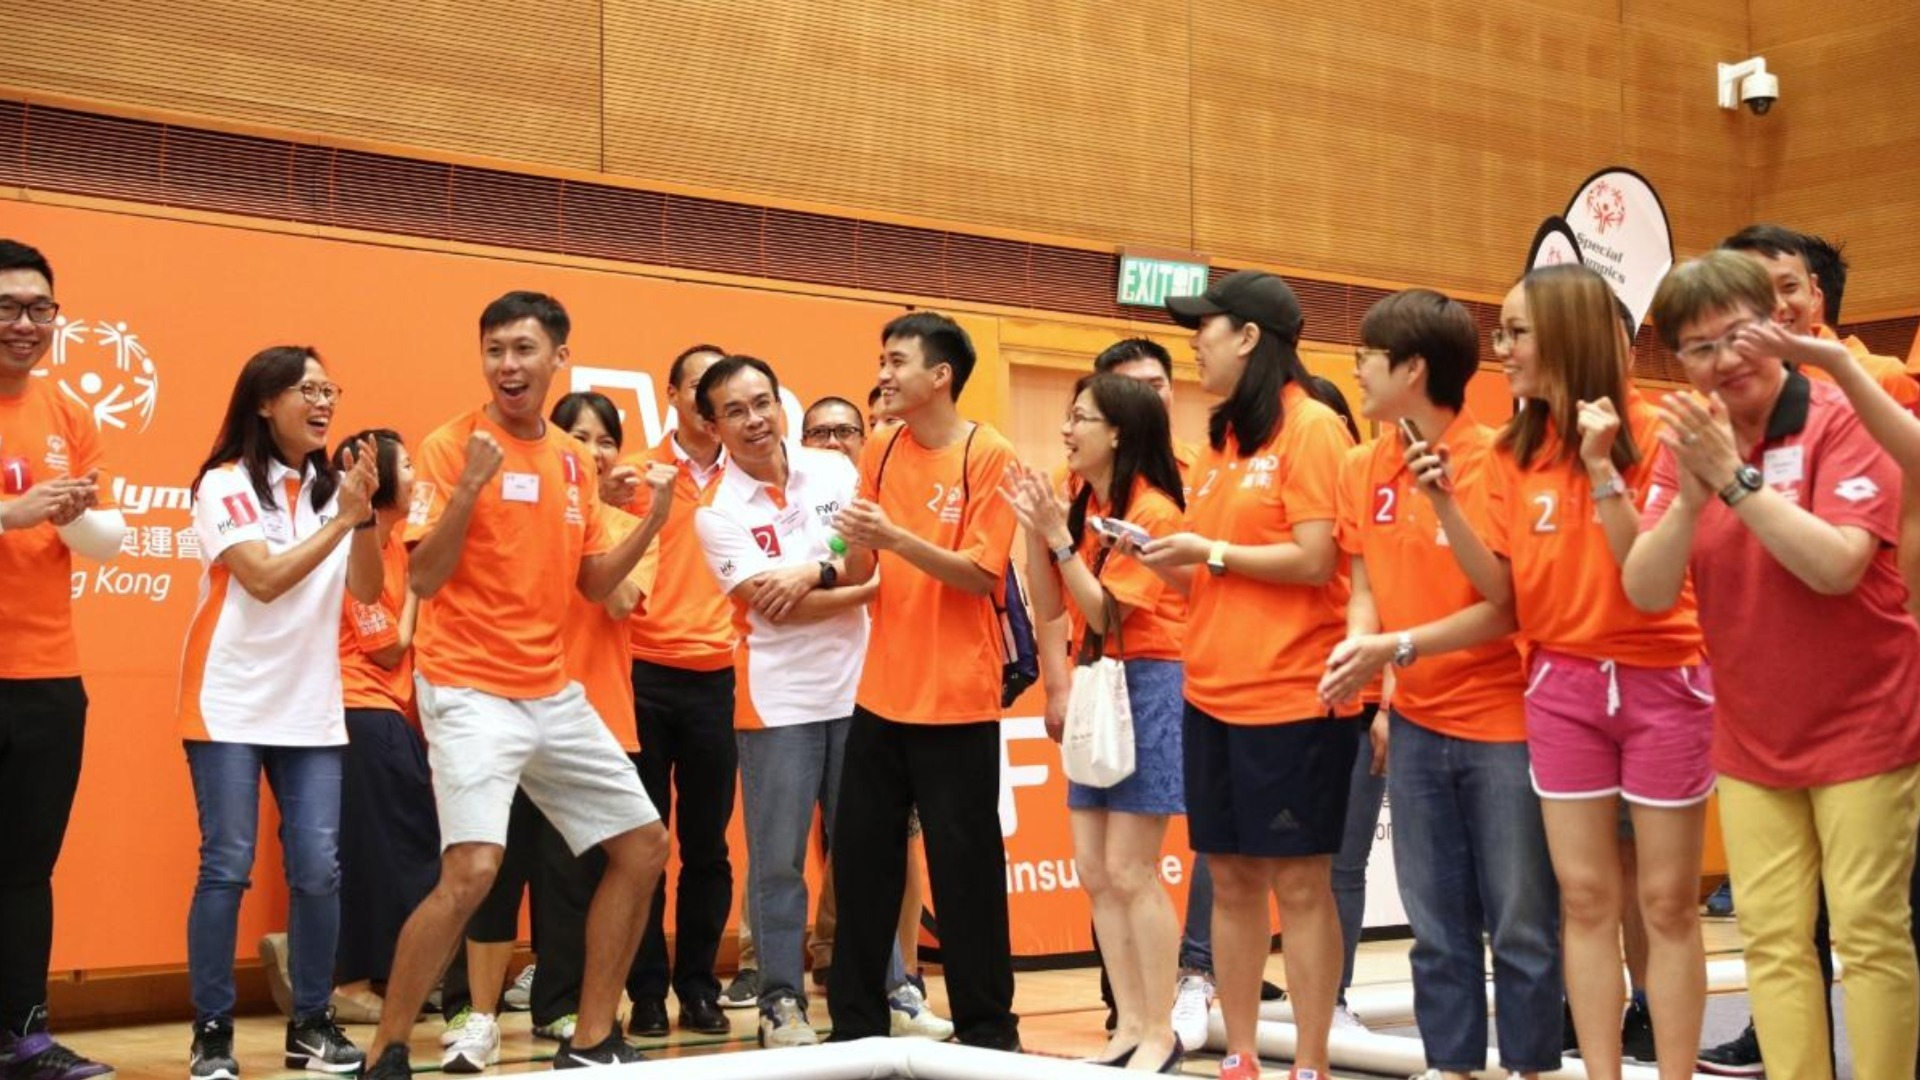 FWD x Special Olympics Hong Kong - Sinclair case study